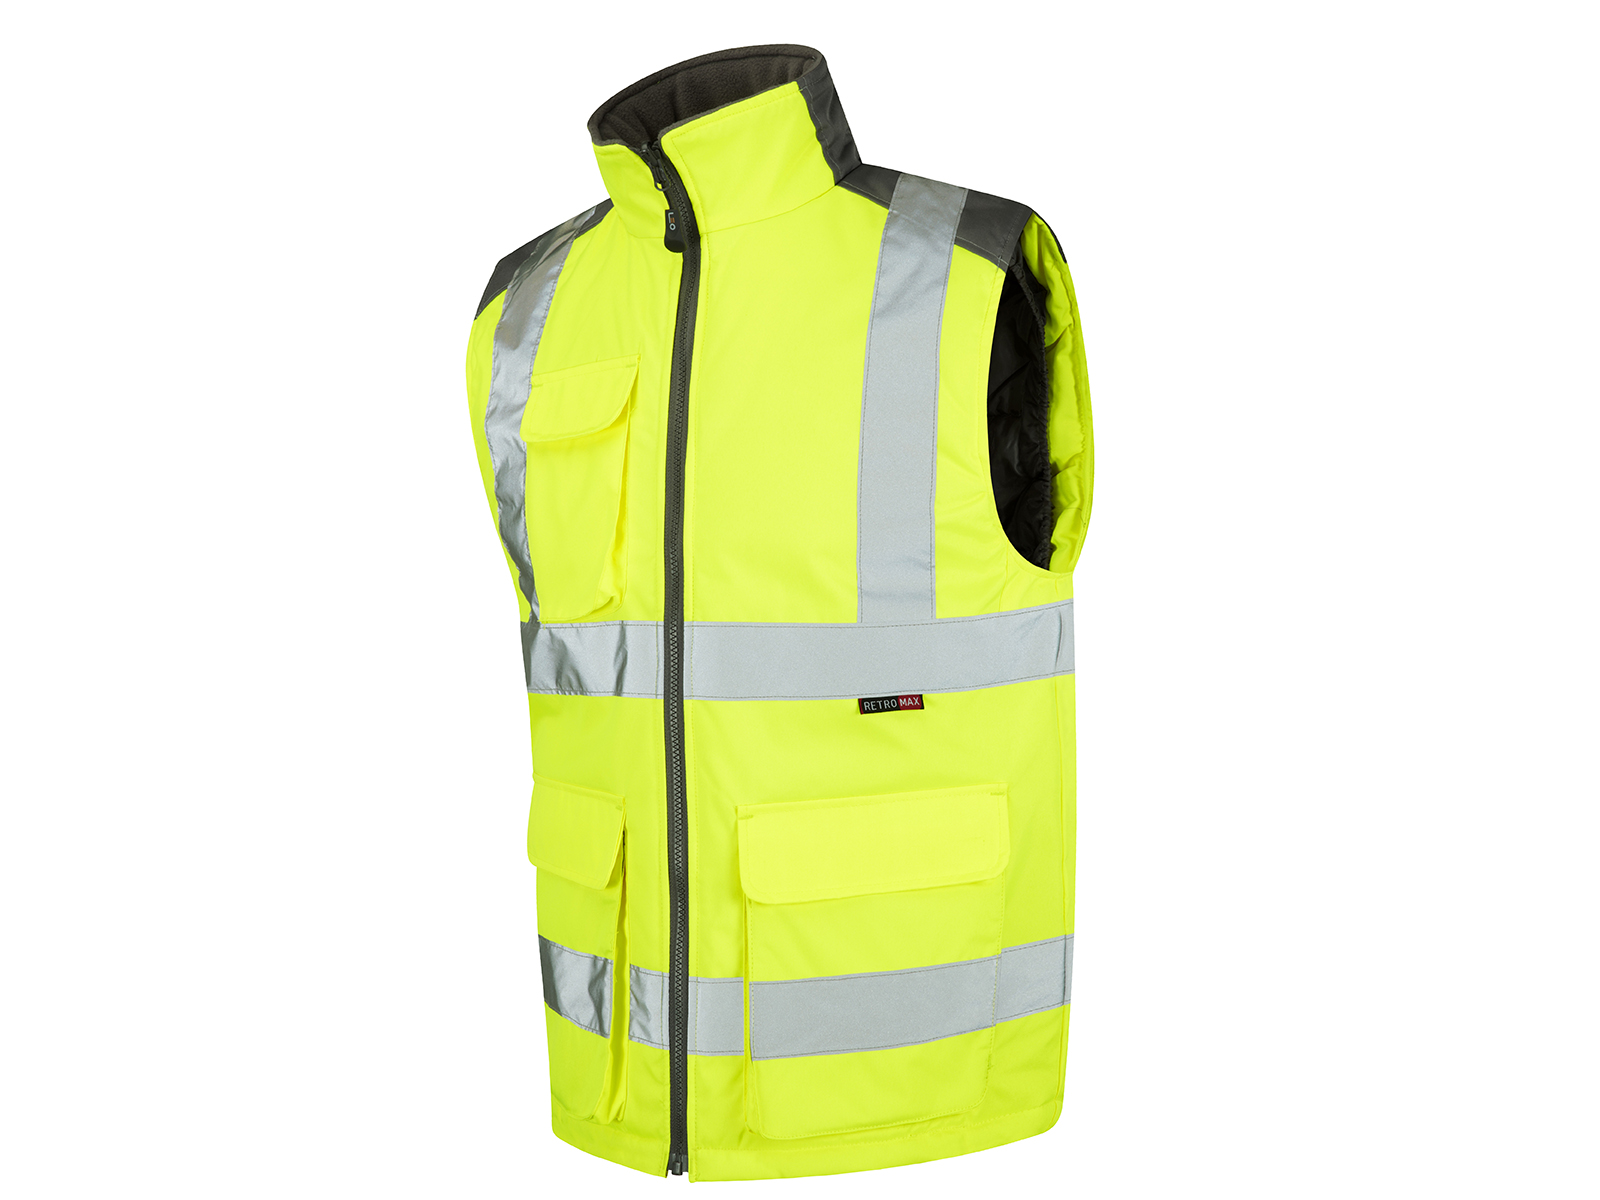 Yellow PU Coated Polyester Bodywarmer Vest w/ Fleece-Lined Collar for Comfort